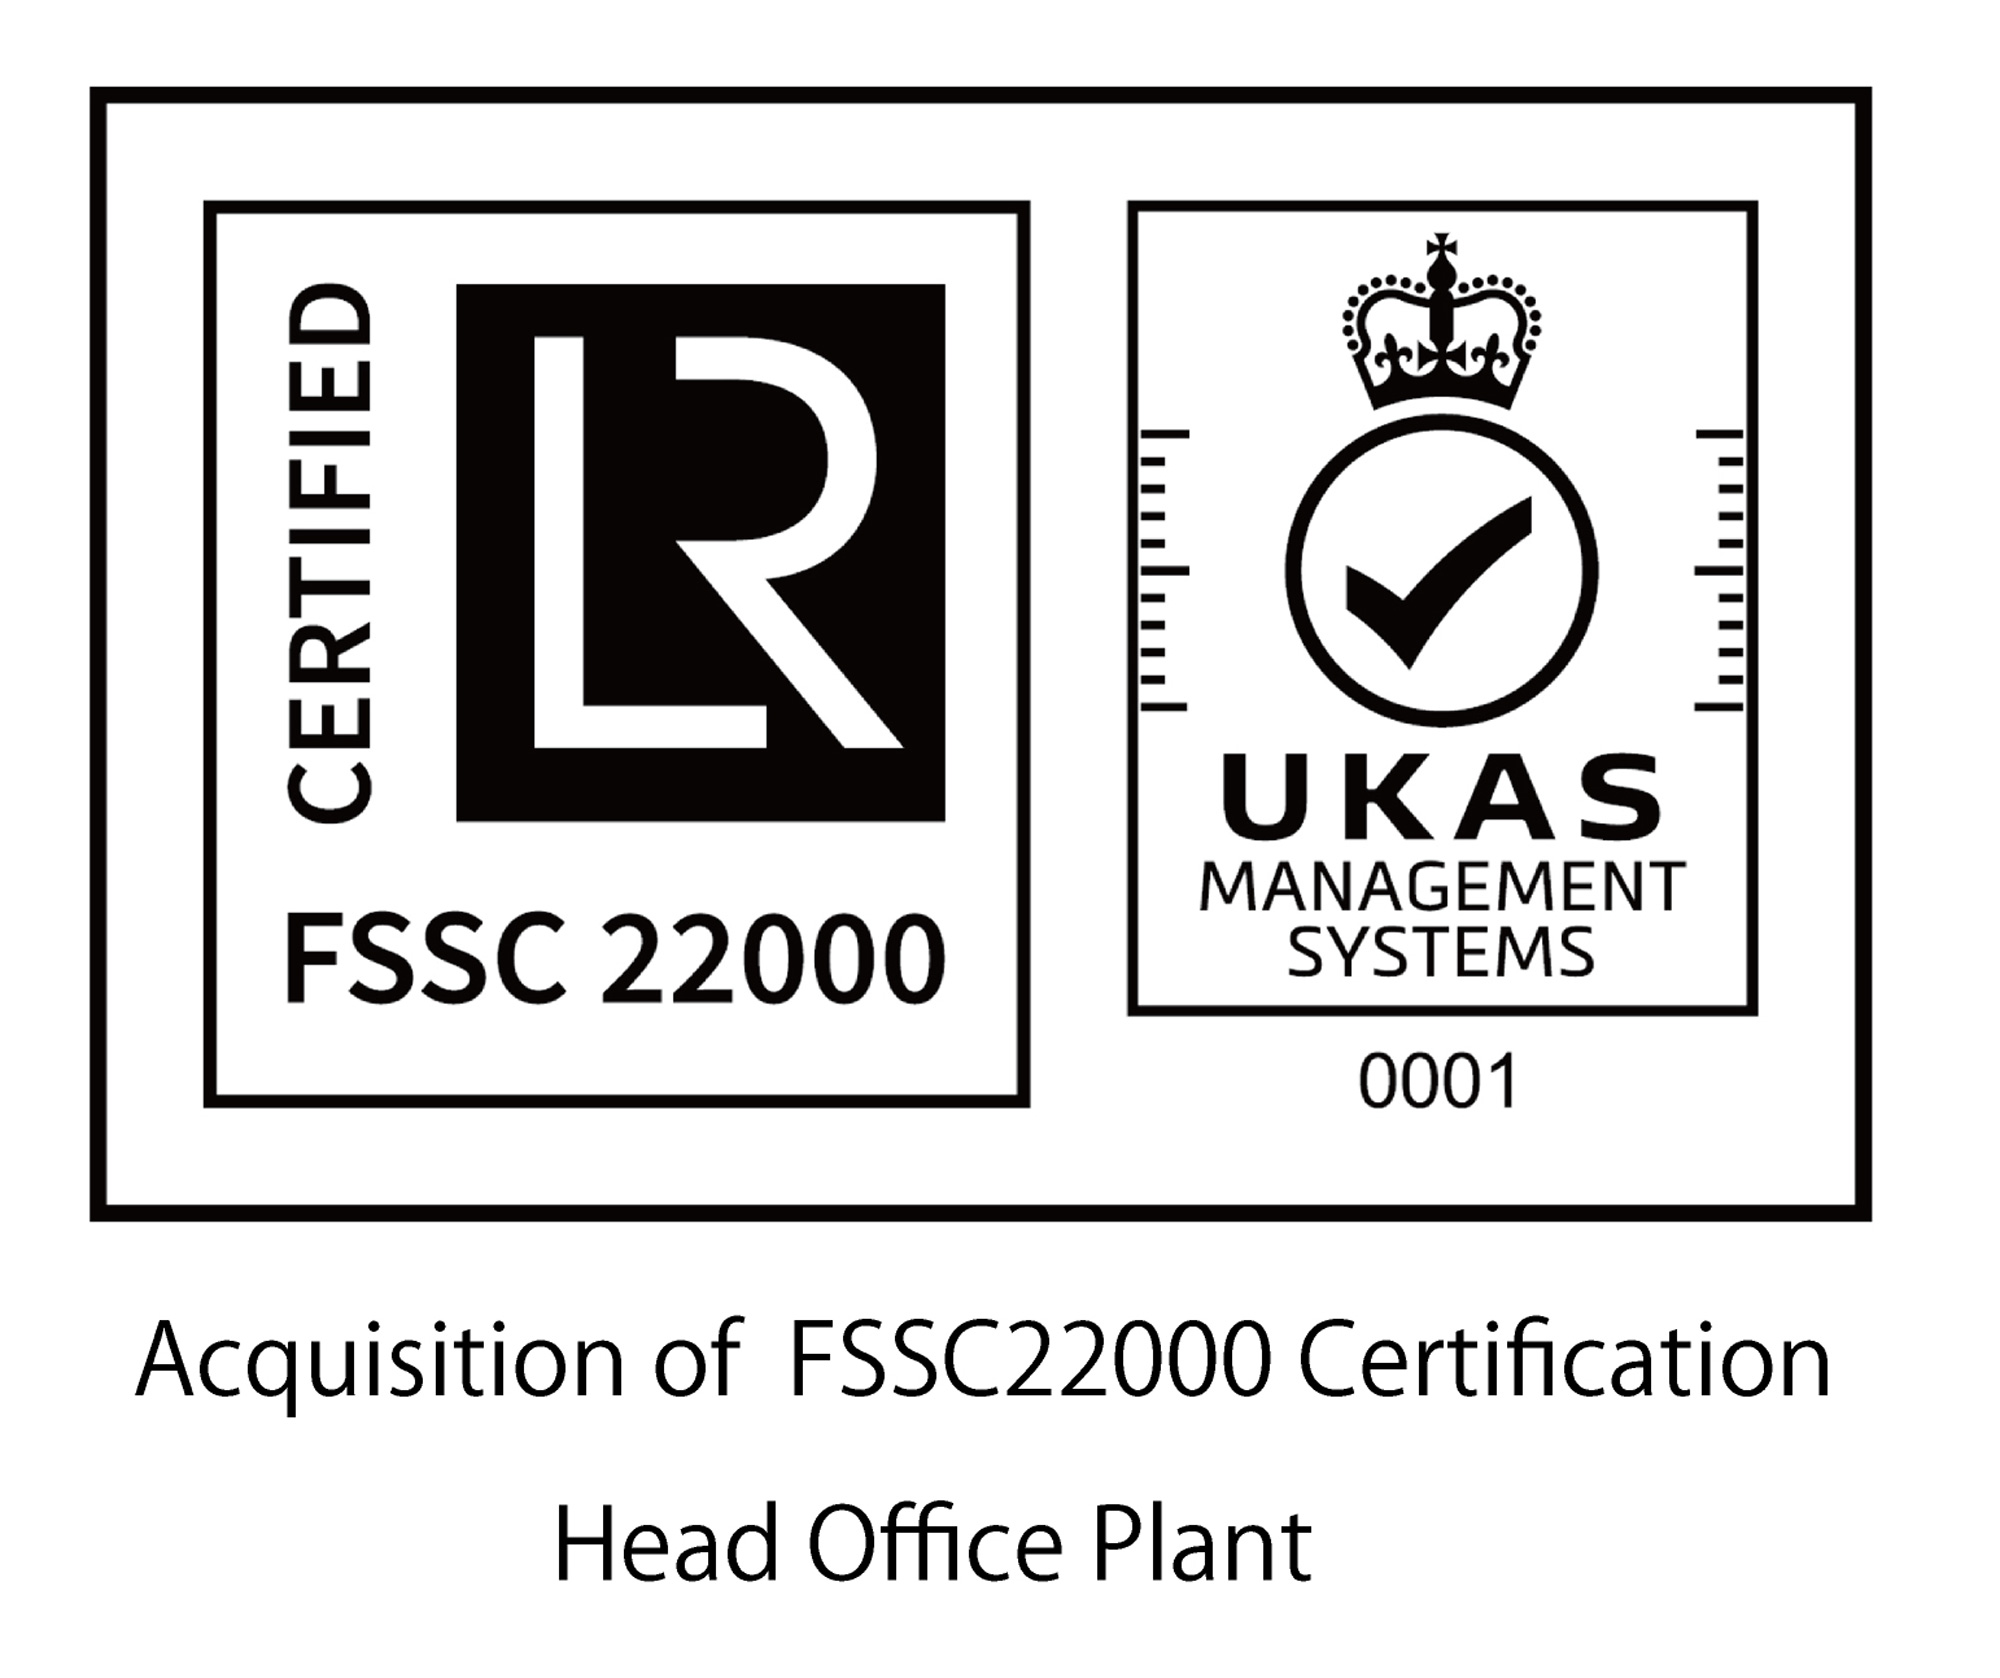 Acquisition of FSSC22000 Certification